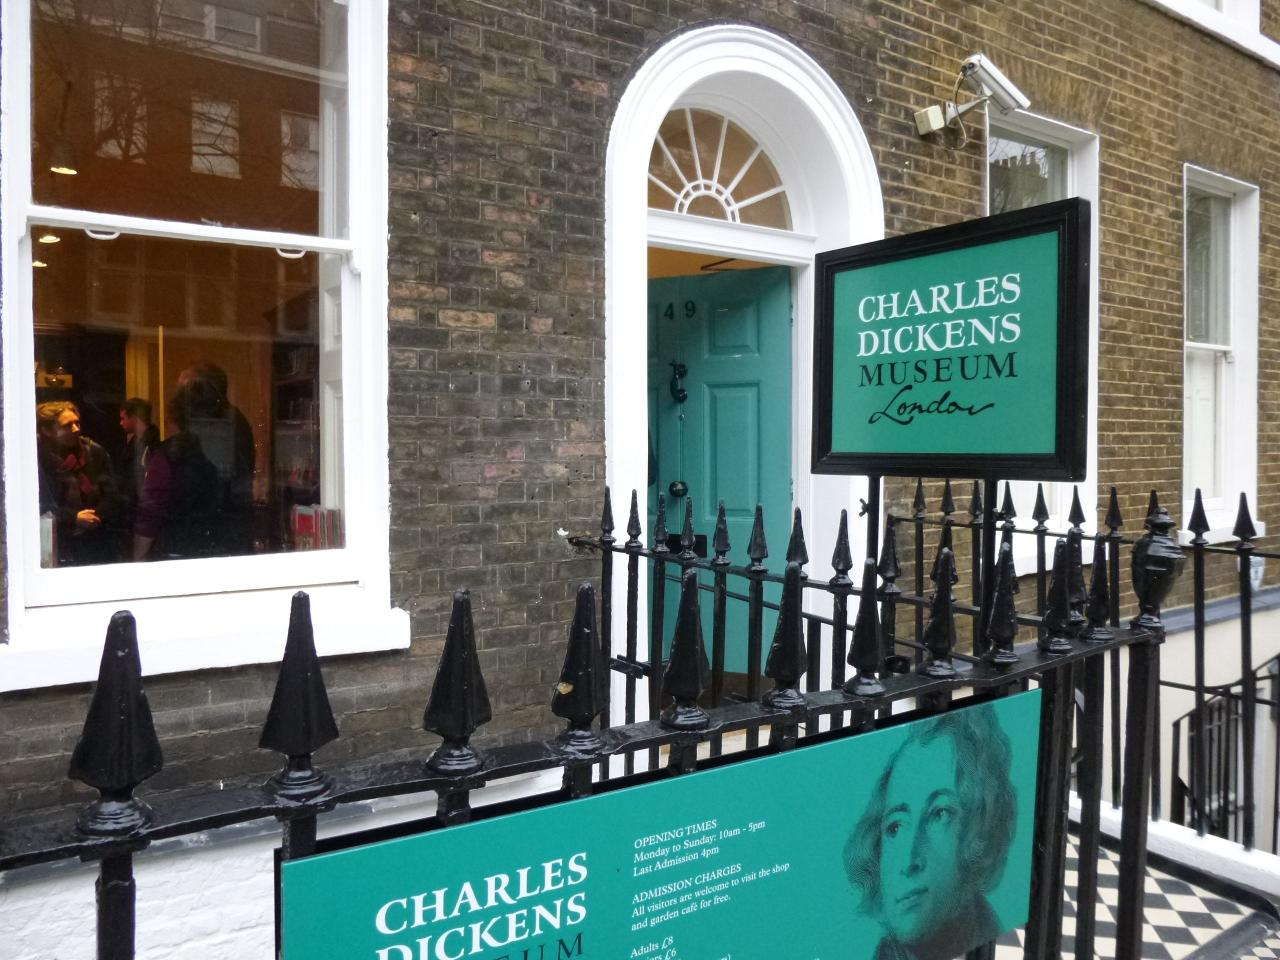 See 30+ Top London Sights & Enter the Charles Dickens Museum